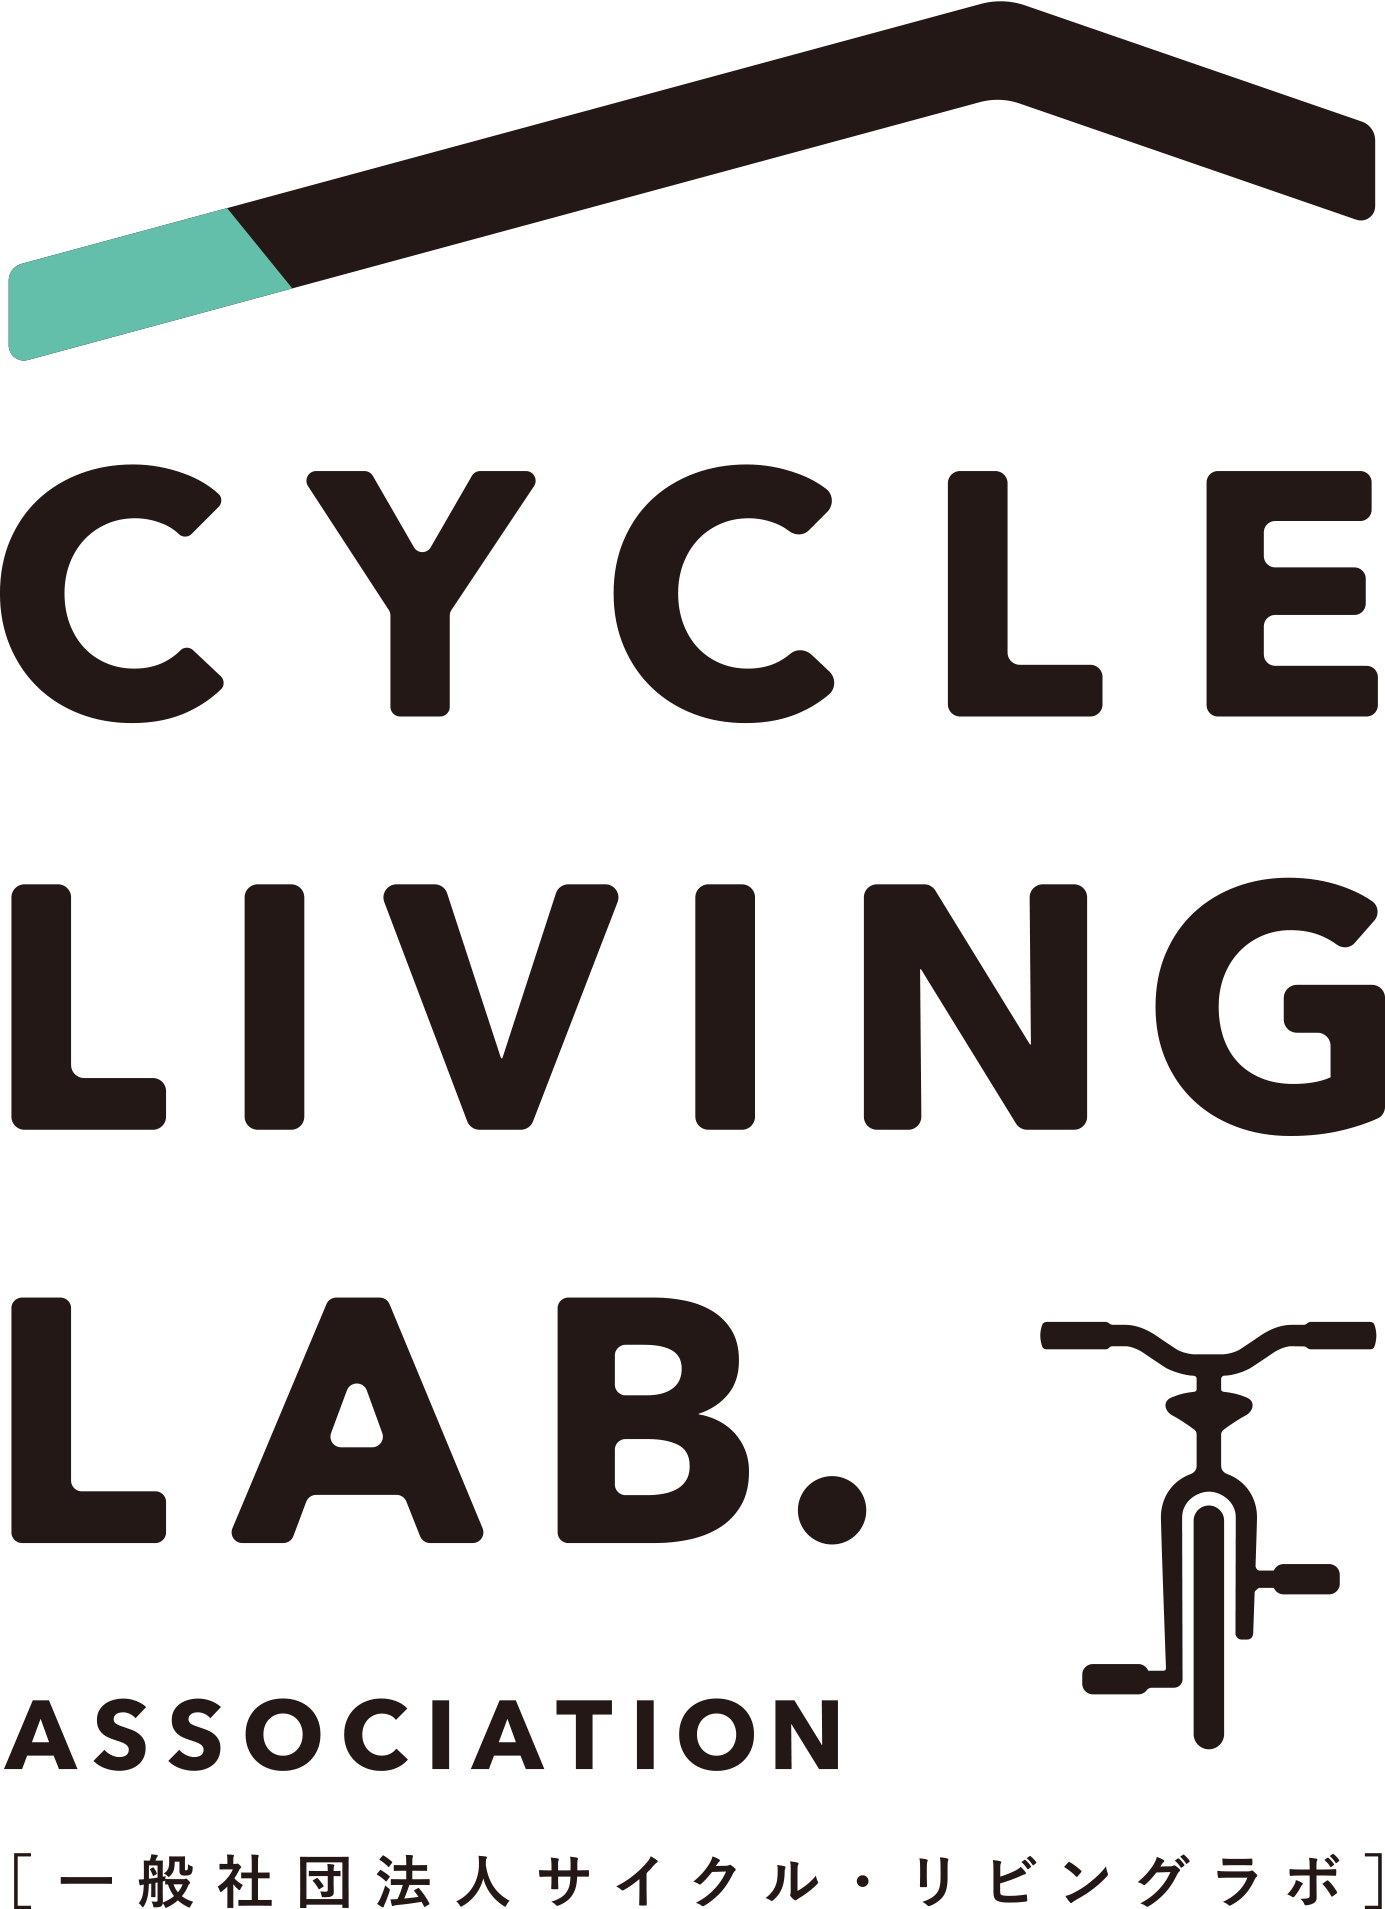 Cycle Living Lab.